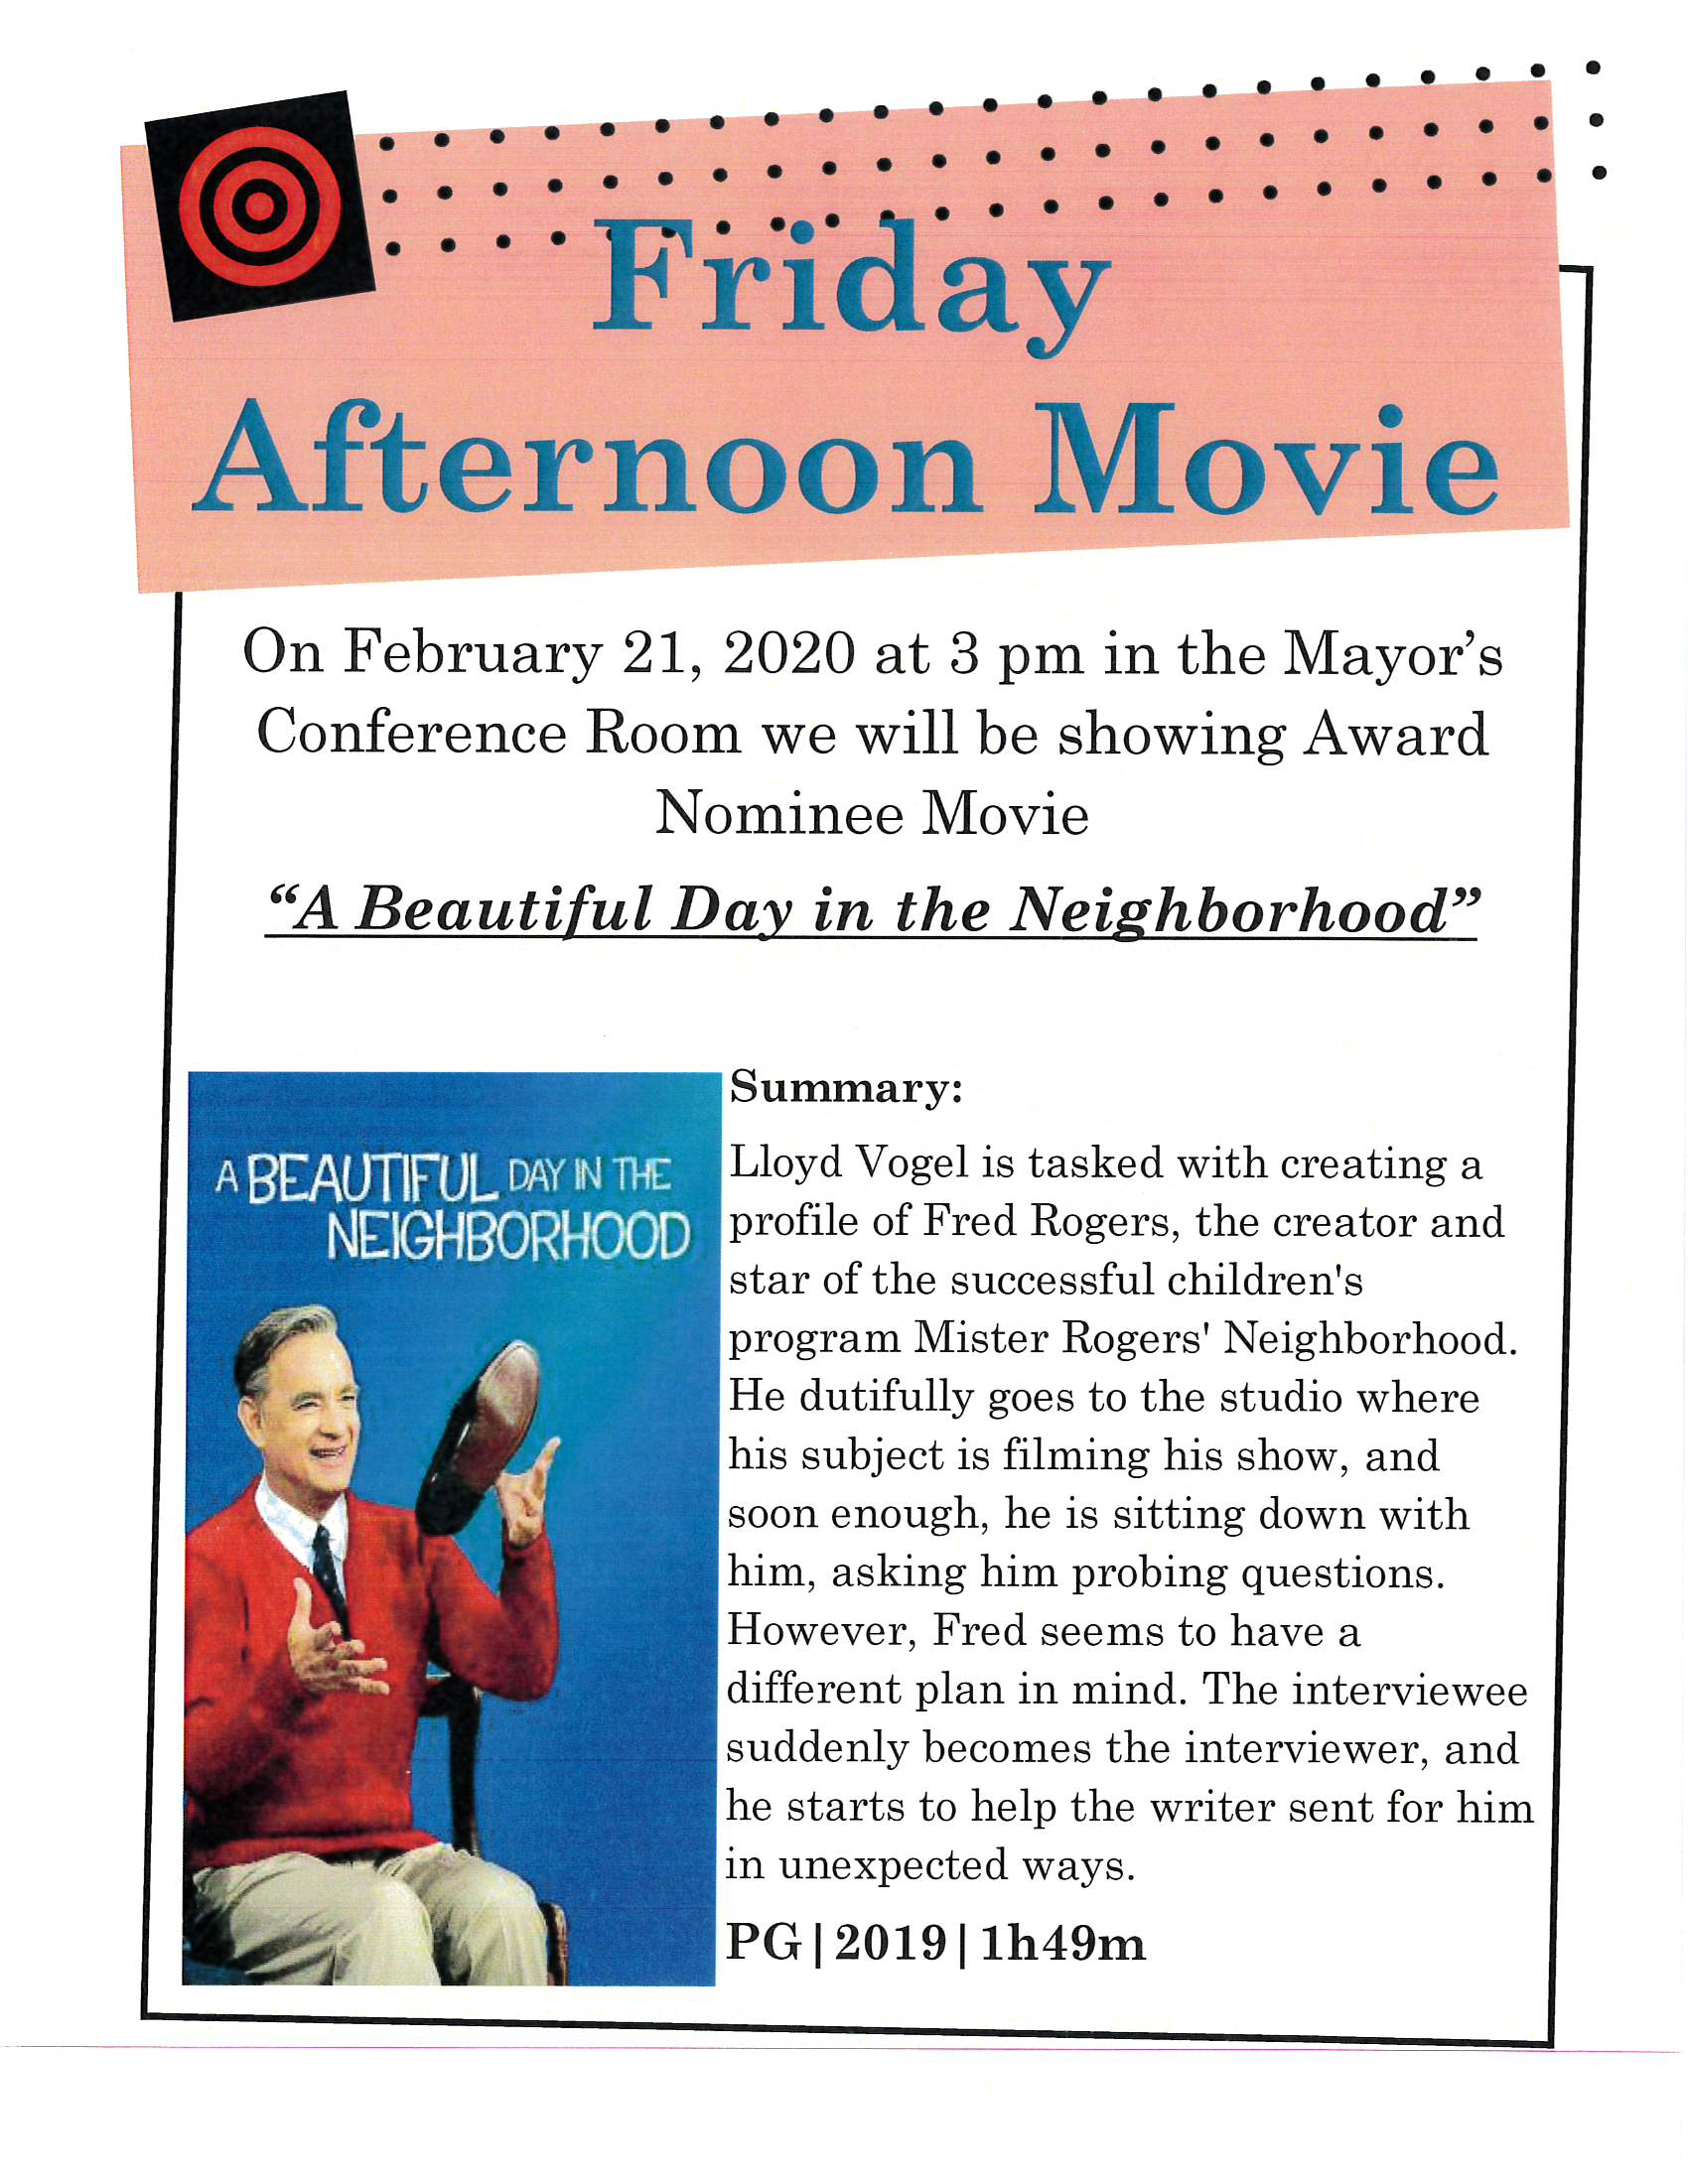 Friday Afternoon Movie 1.21.20